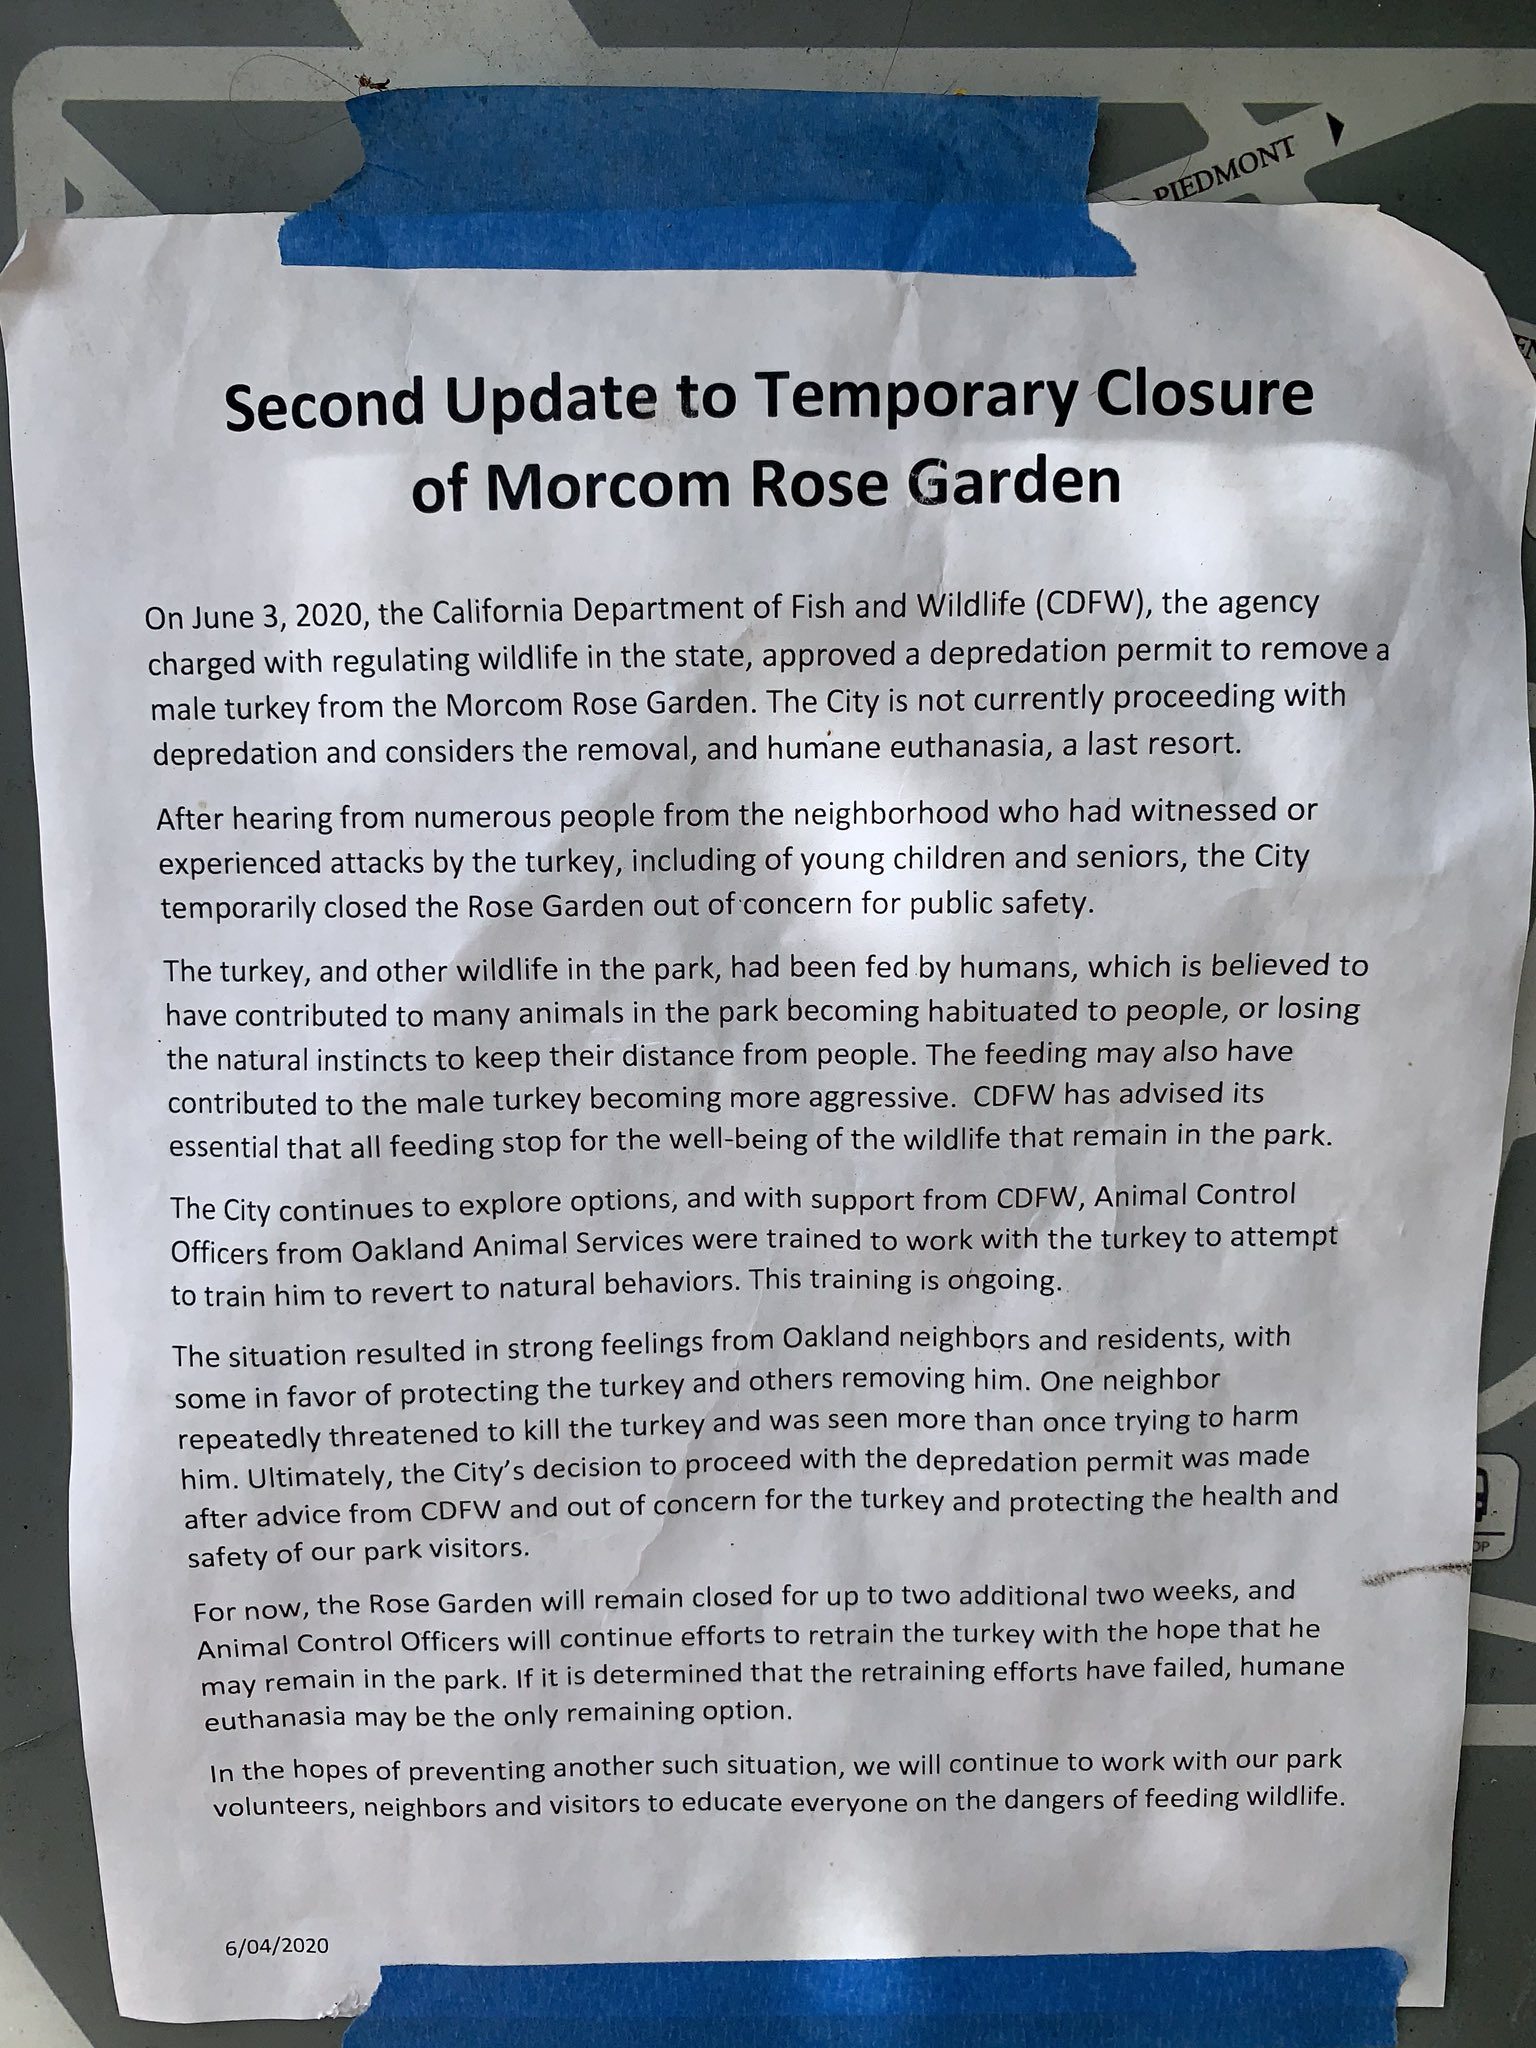 A notice, posted at Oakland's Morcom Rose Garden, informs visitors of a closure due to an aggressive turkey.